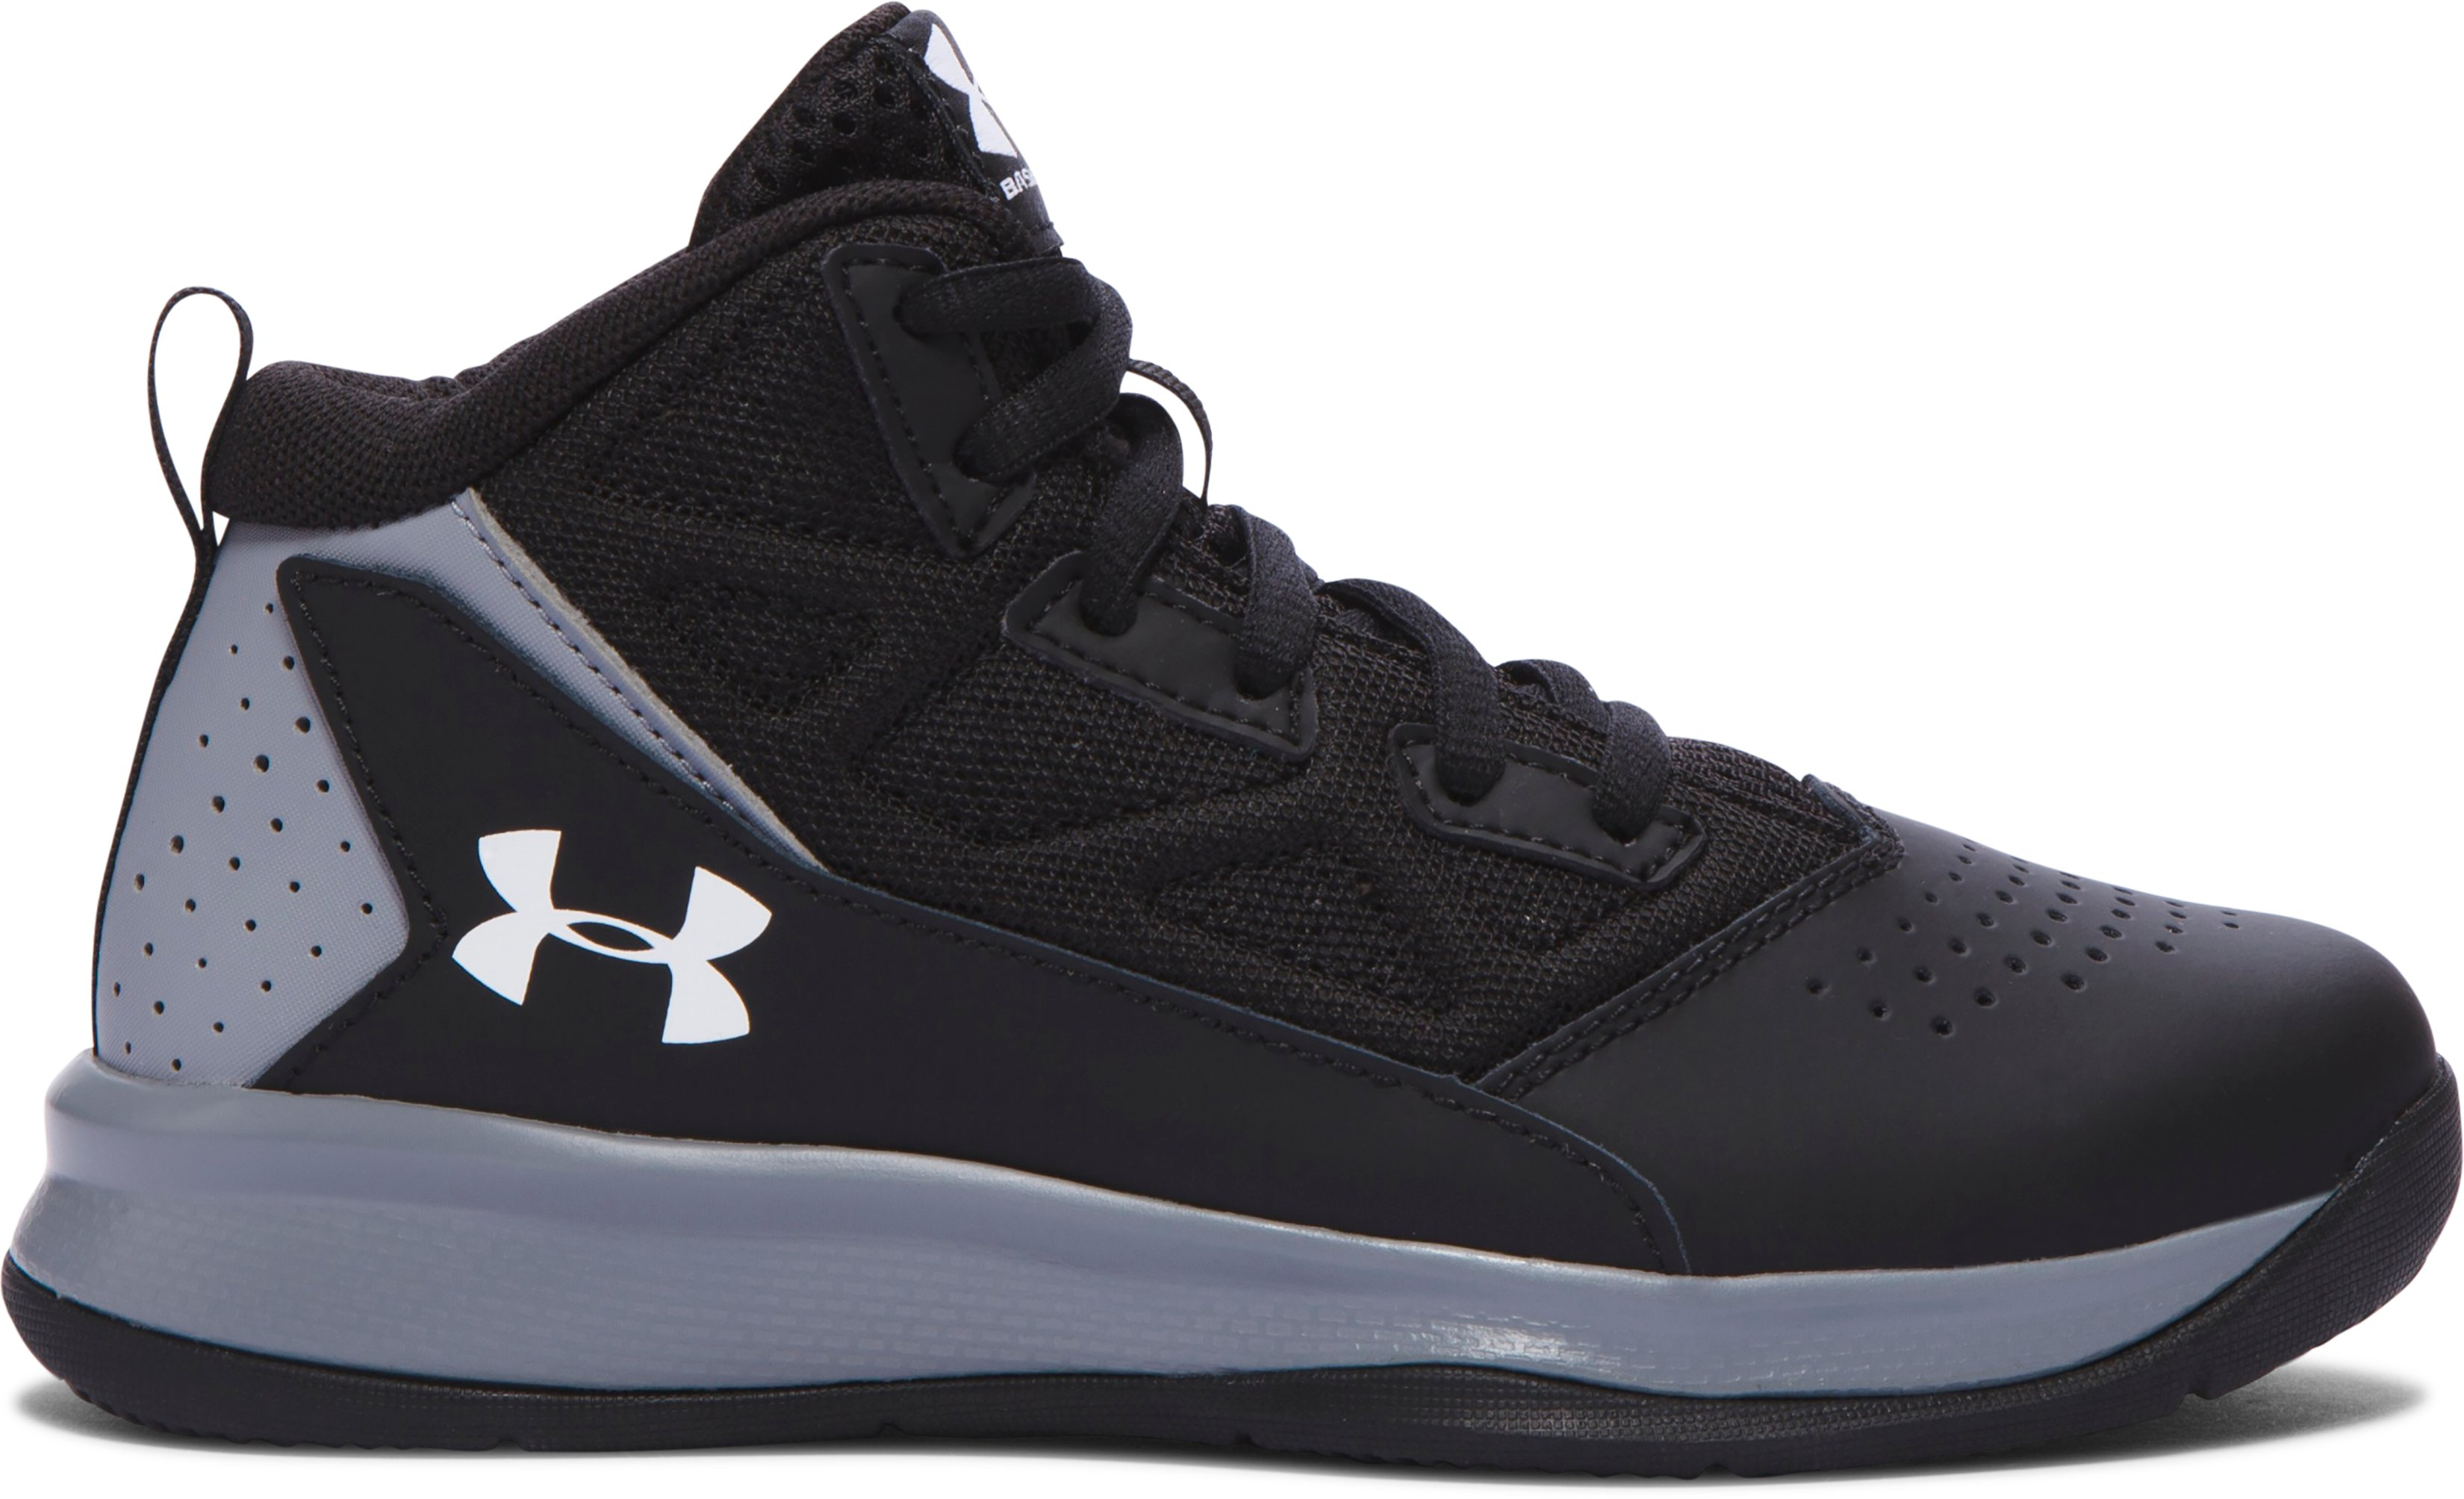 Boys' Pre-School UA Jet Mid Basketball Shoes, Black